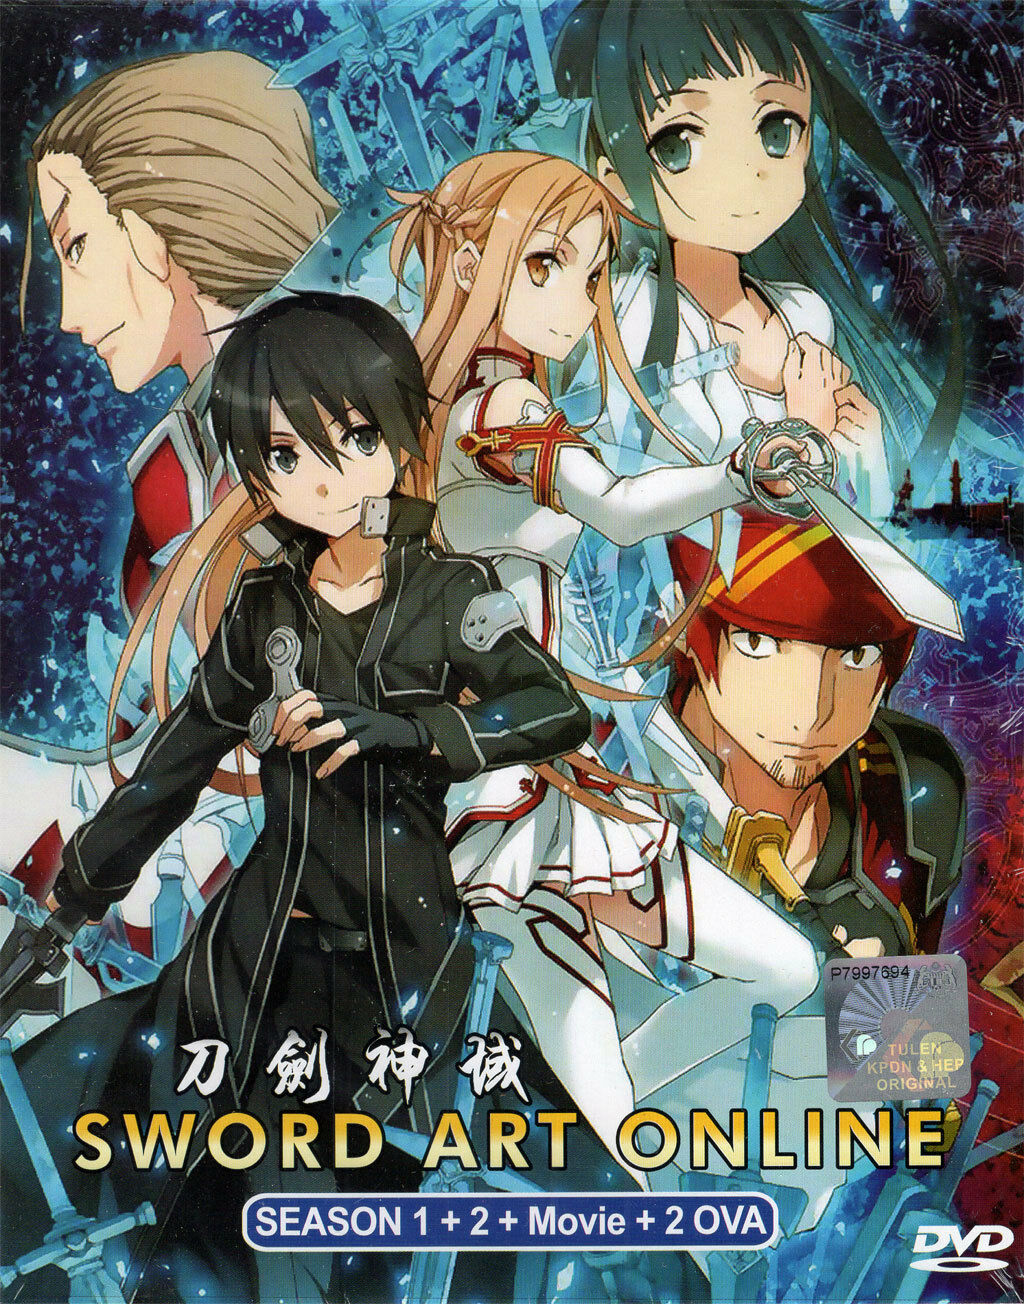 Sword Art Online COMPLETE Season 1+2 + Movie + 2 OVA